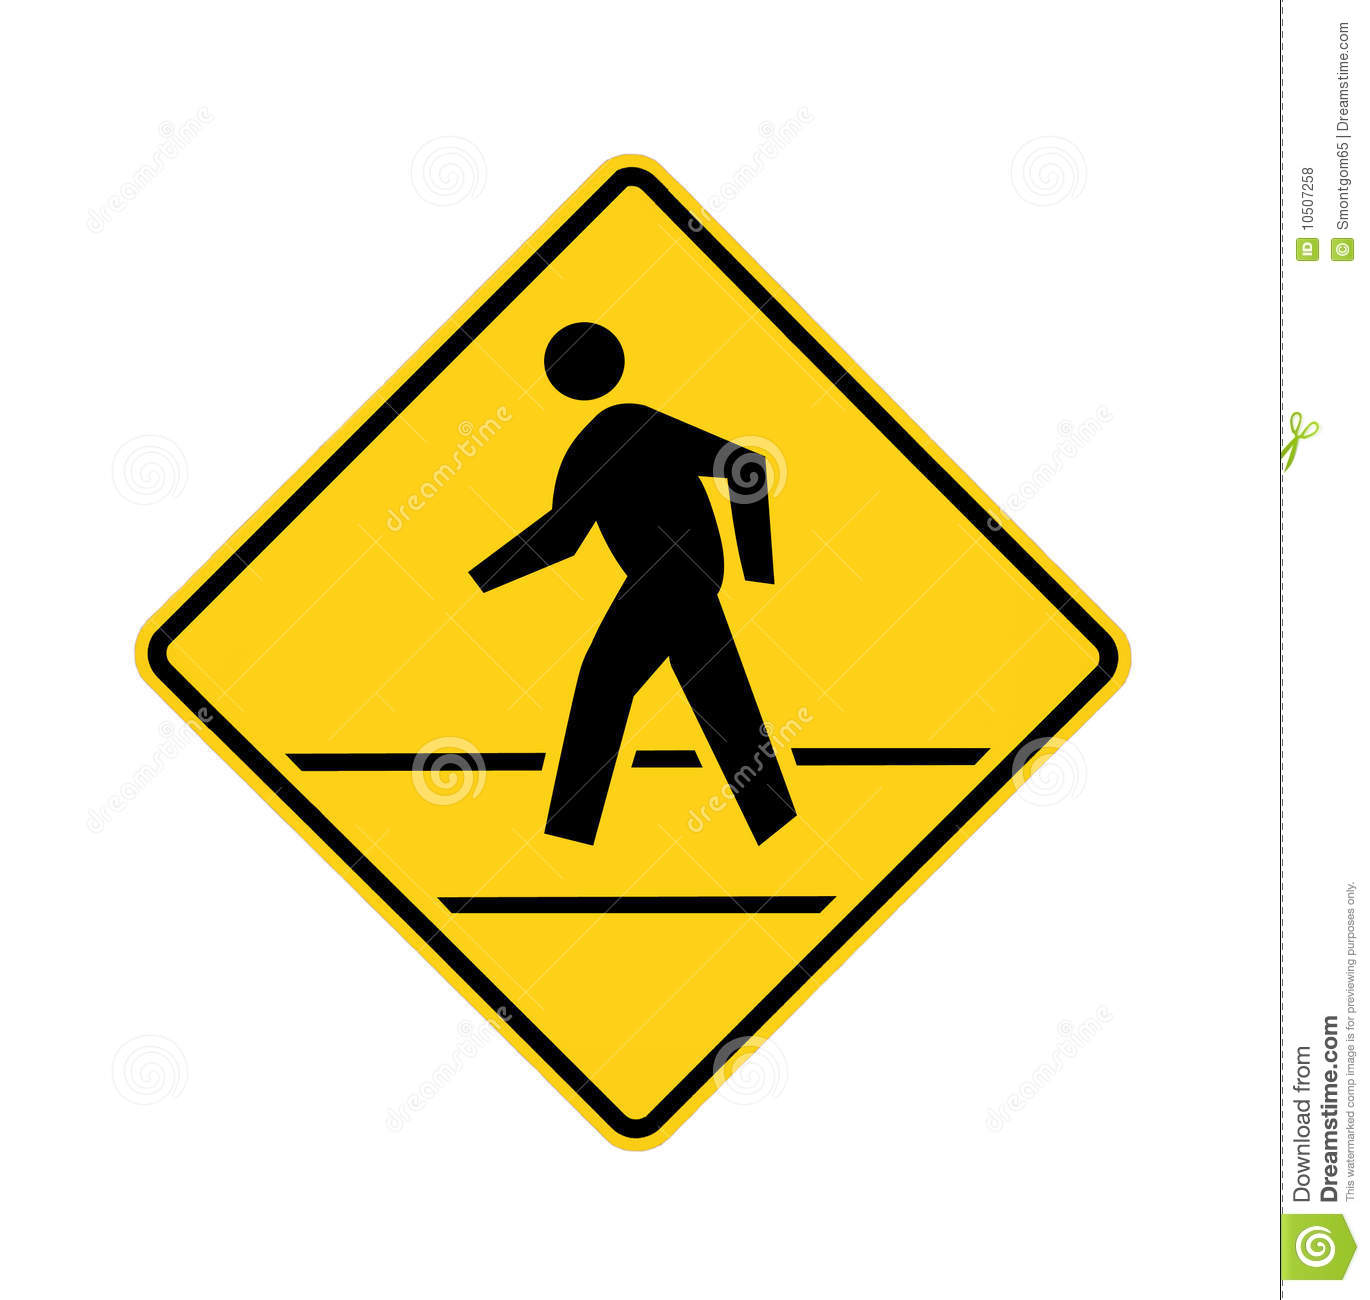 Road Sign Crosswalk Yellow With Lines Royalty Free Stock Photos.